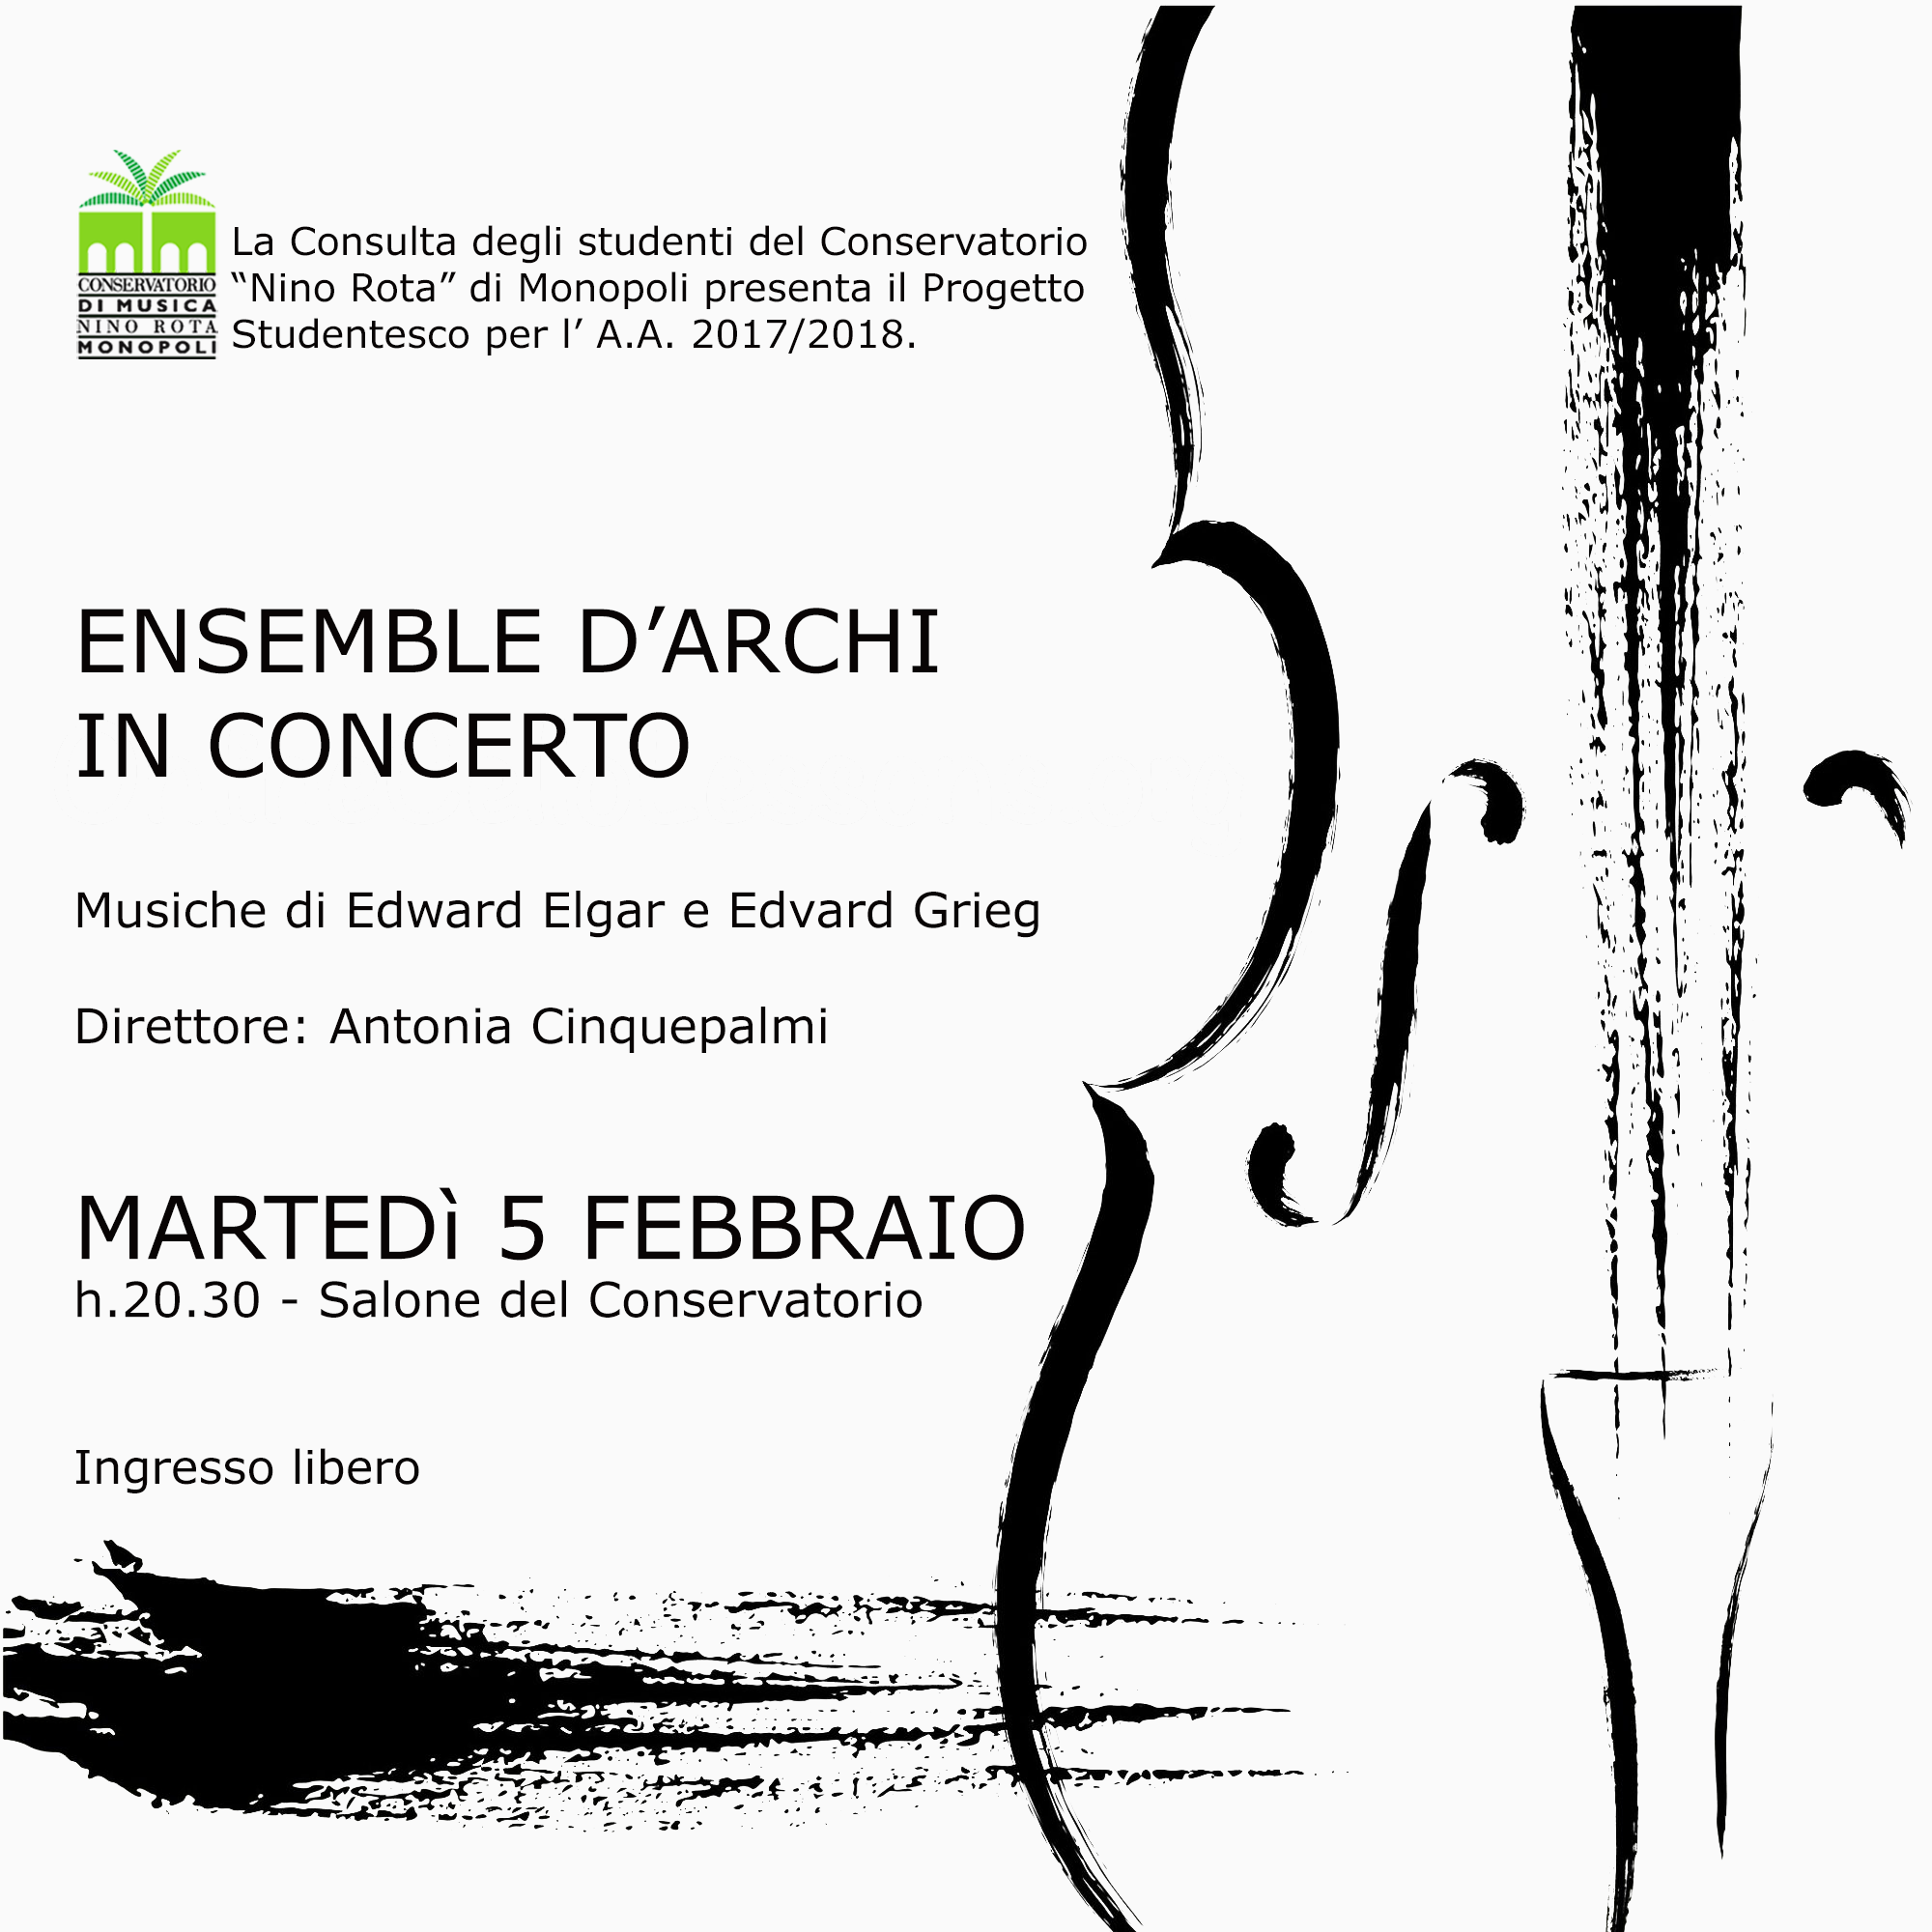 Ensemble darchi in concerto